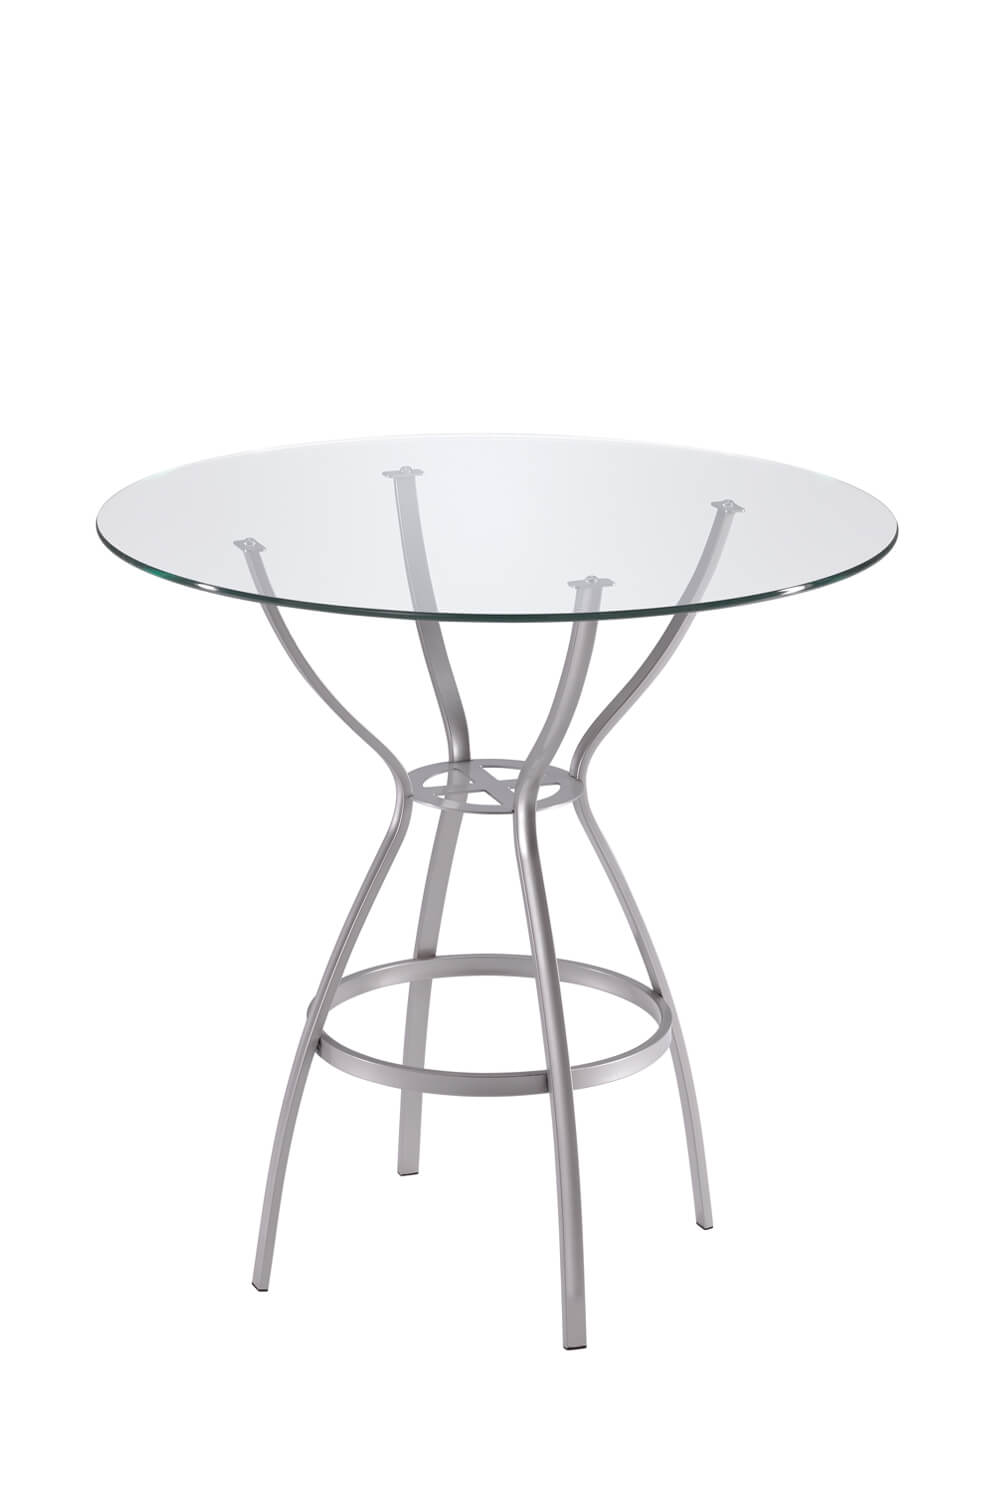 Rome Table with Round Glass